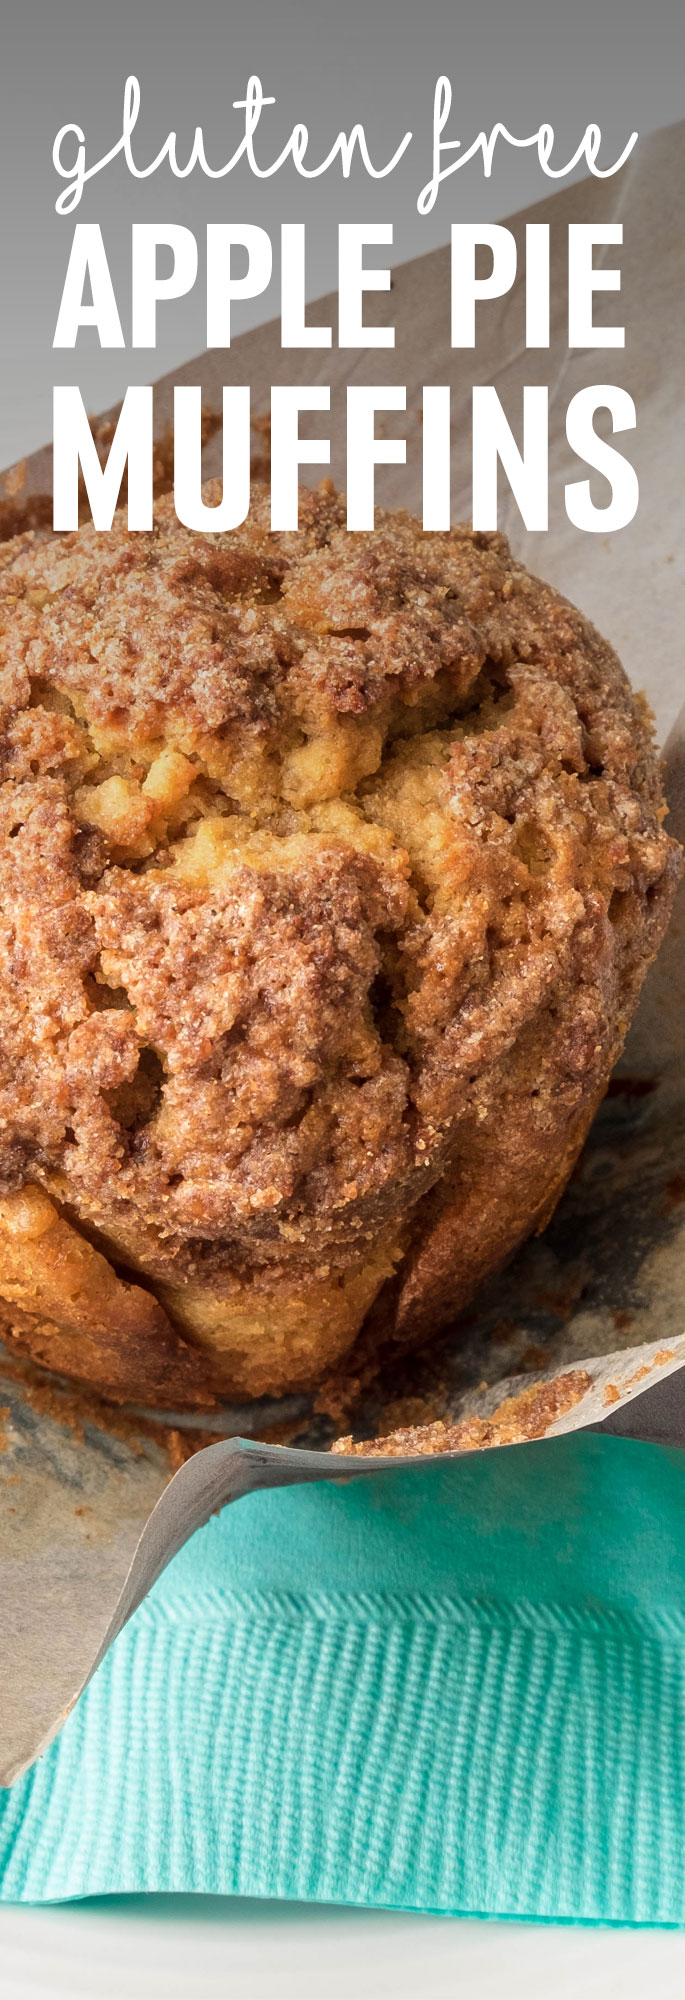 What could be better than a freshly baked healthy apple pie muffin. Wonderfully moist and flavored with cinnamon, these muffins are a winner. Shared via http://www.gluteninsight.com